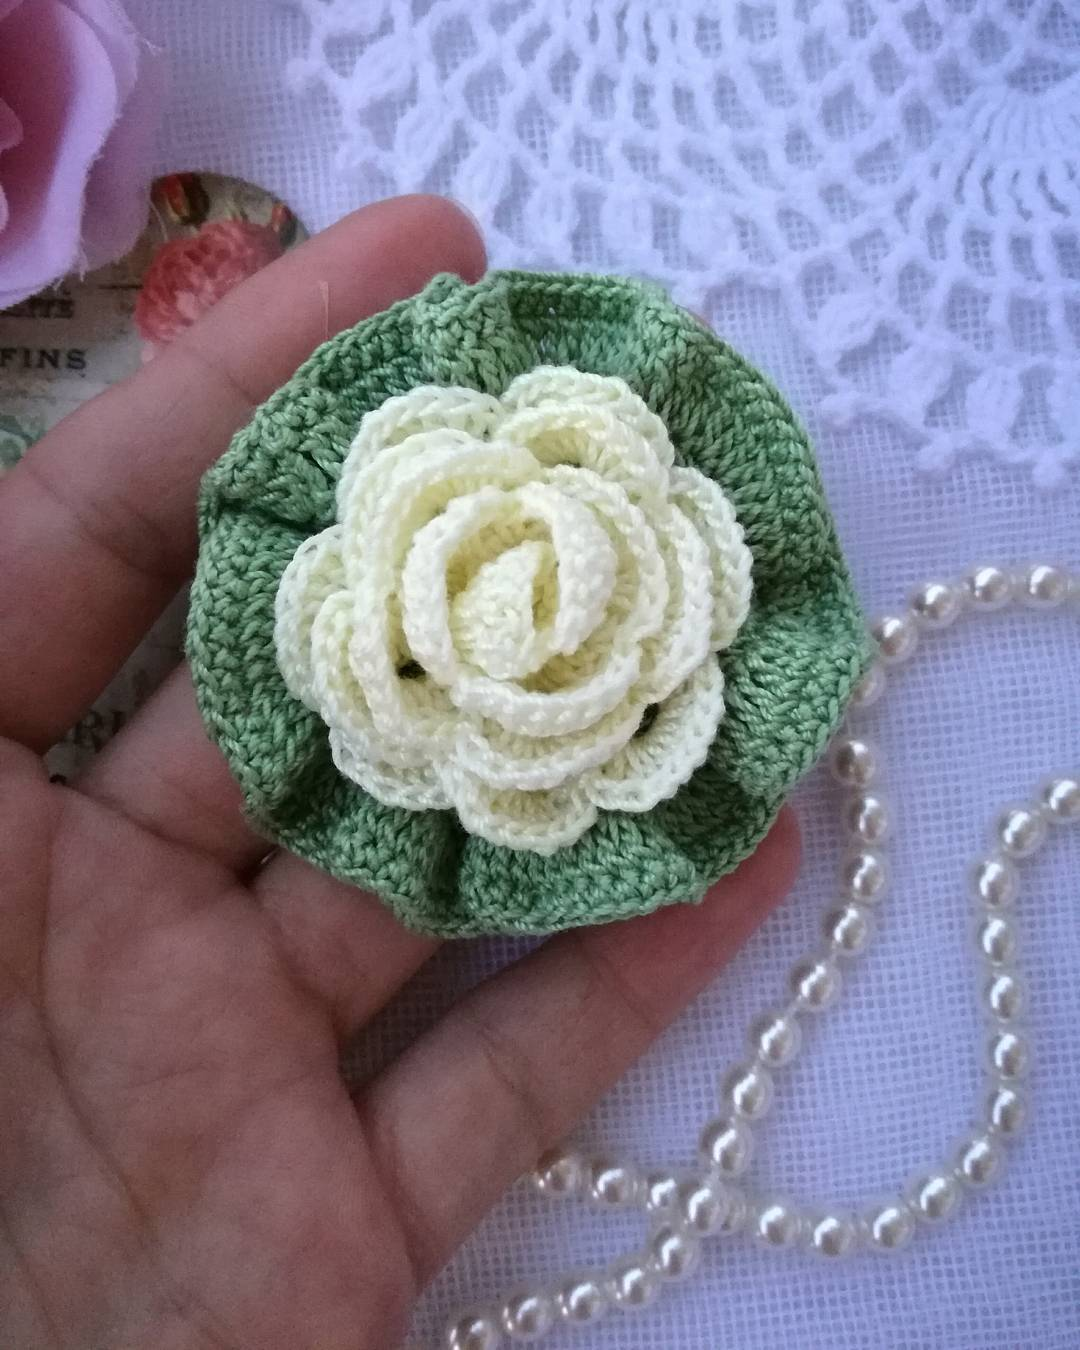 Crochet Lace Flower Pattern Free - Flowers Healthy